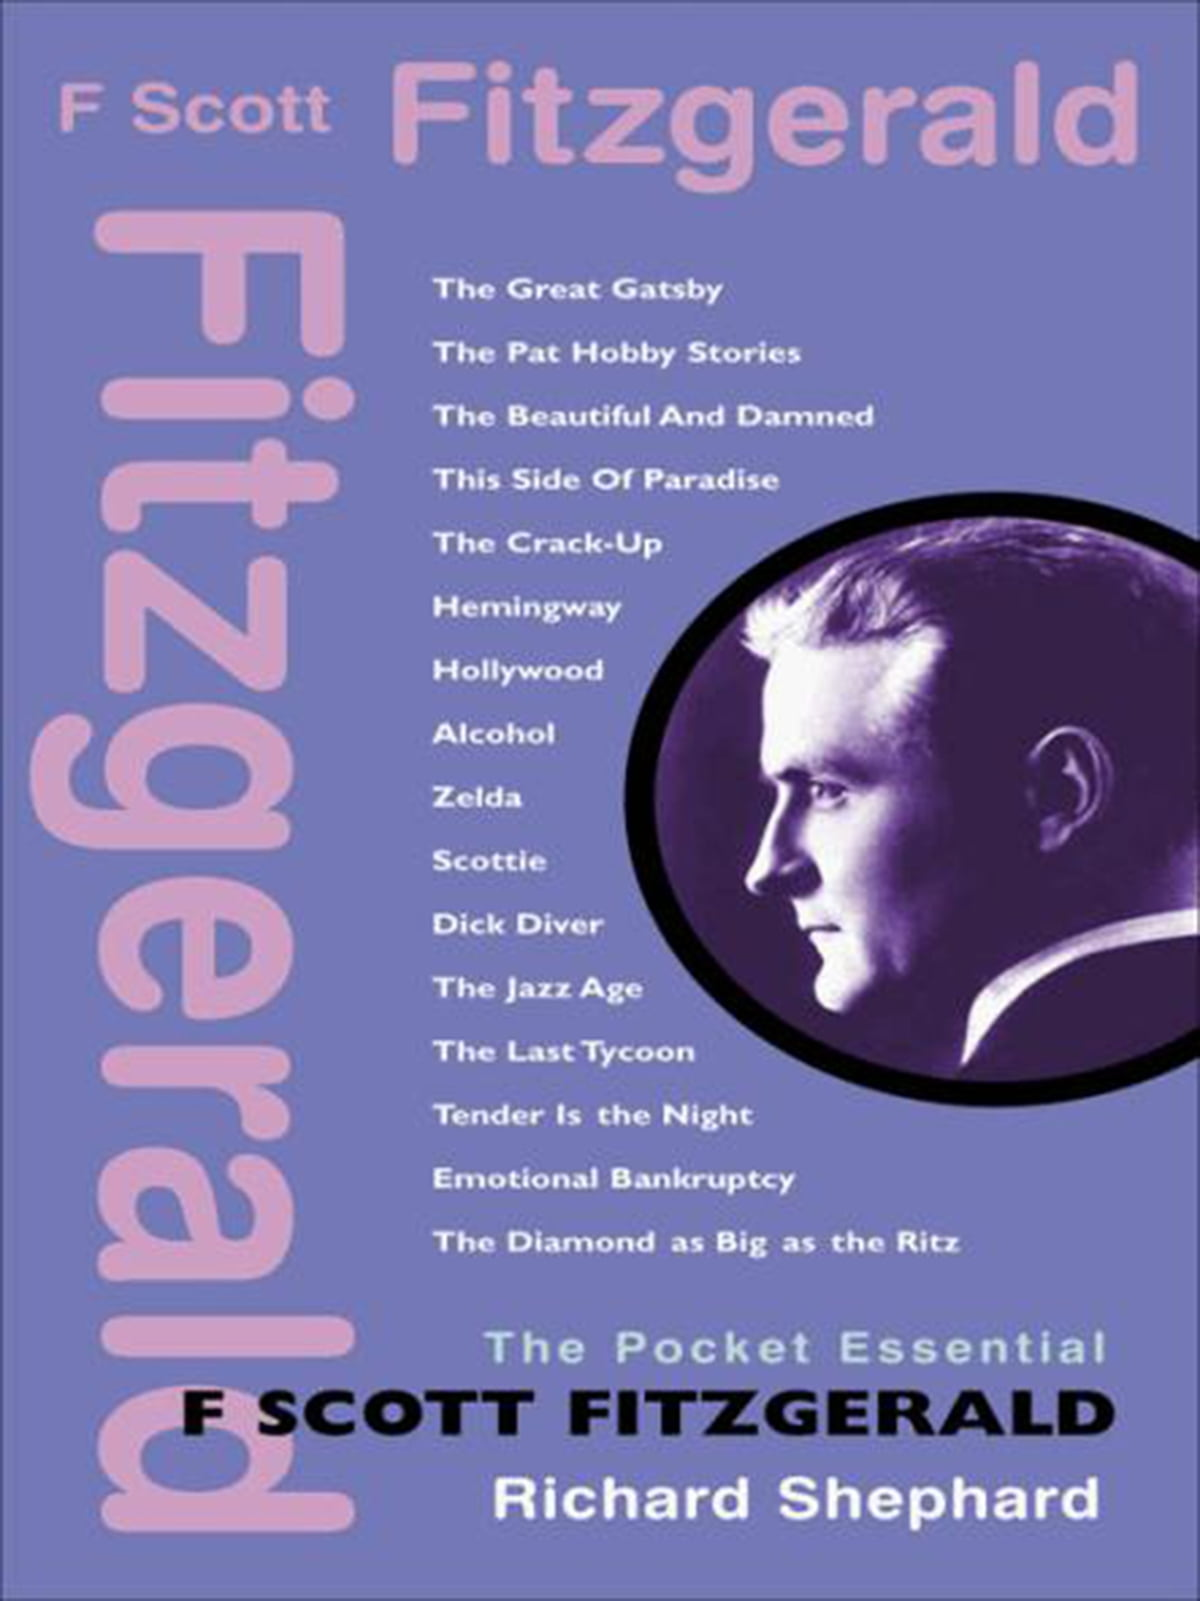 F. Scott Fitzgerald eBook by Richard Shephard - 9781843442264 | Rakuten Kobo